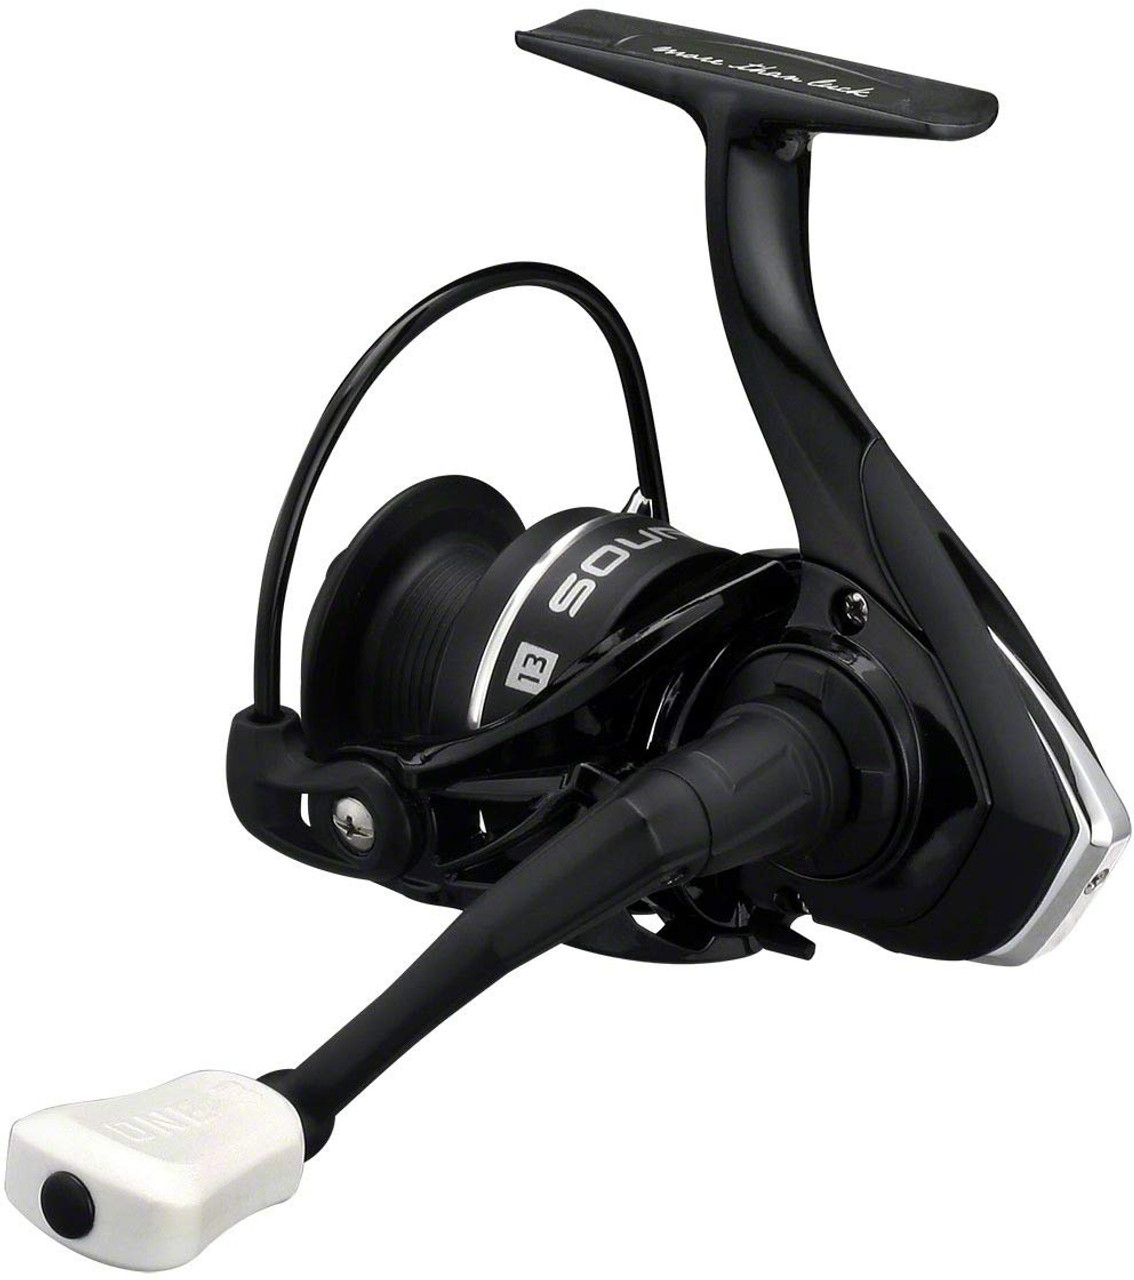 13 Fishing Source X 4000 Spinning Reel, 5.1:1 - SORX4000